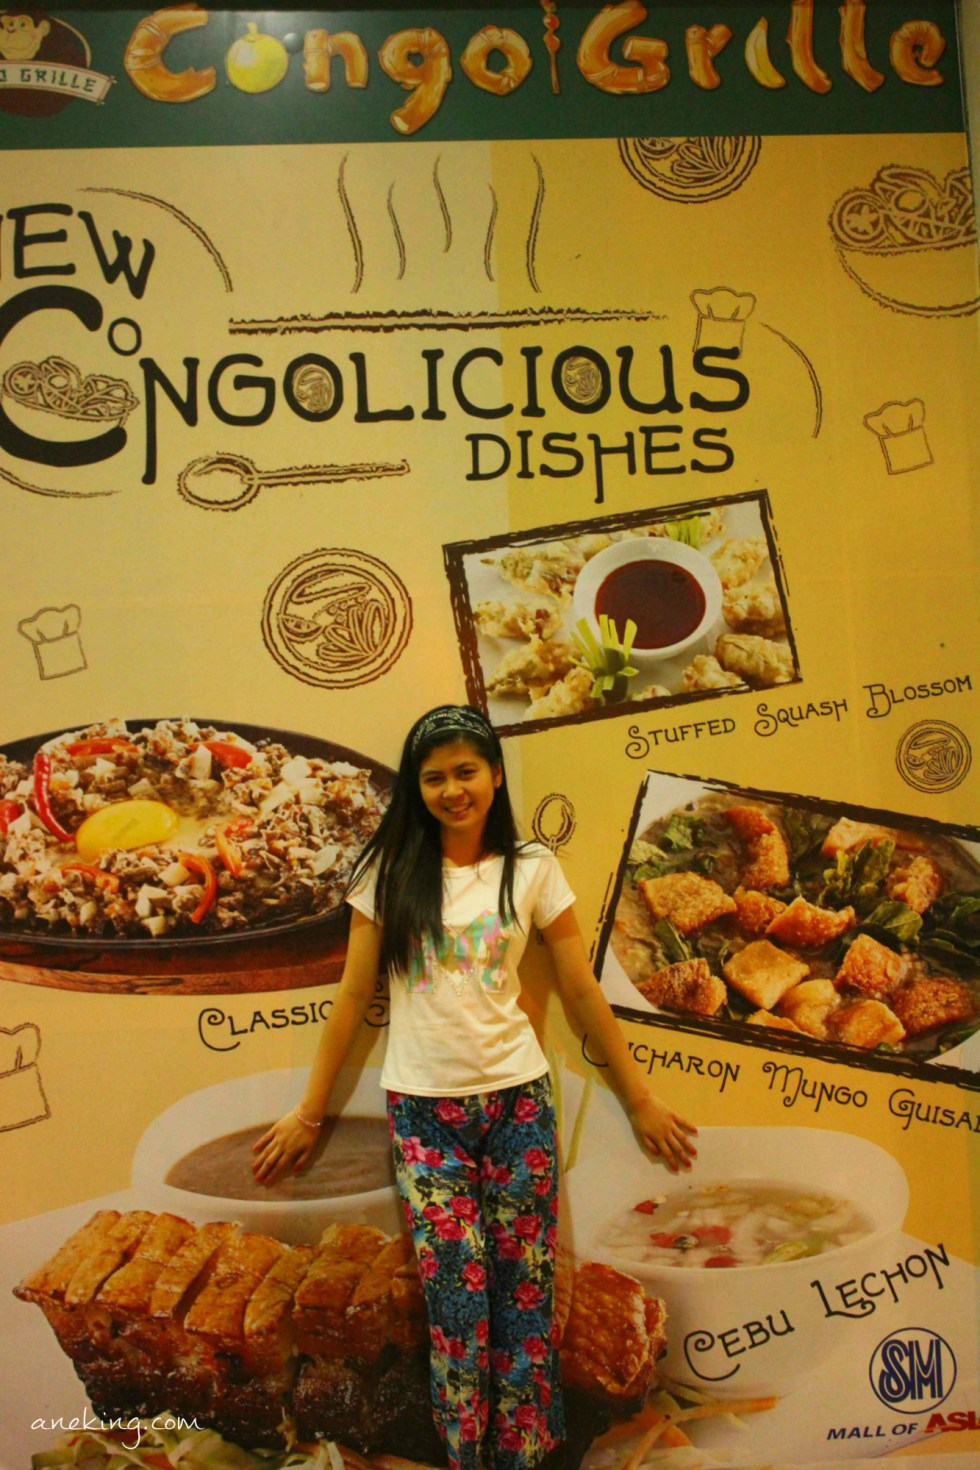 Congolicious Dishes In Congo Grille